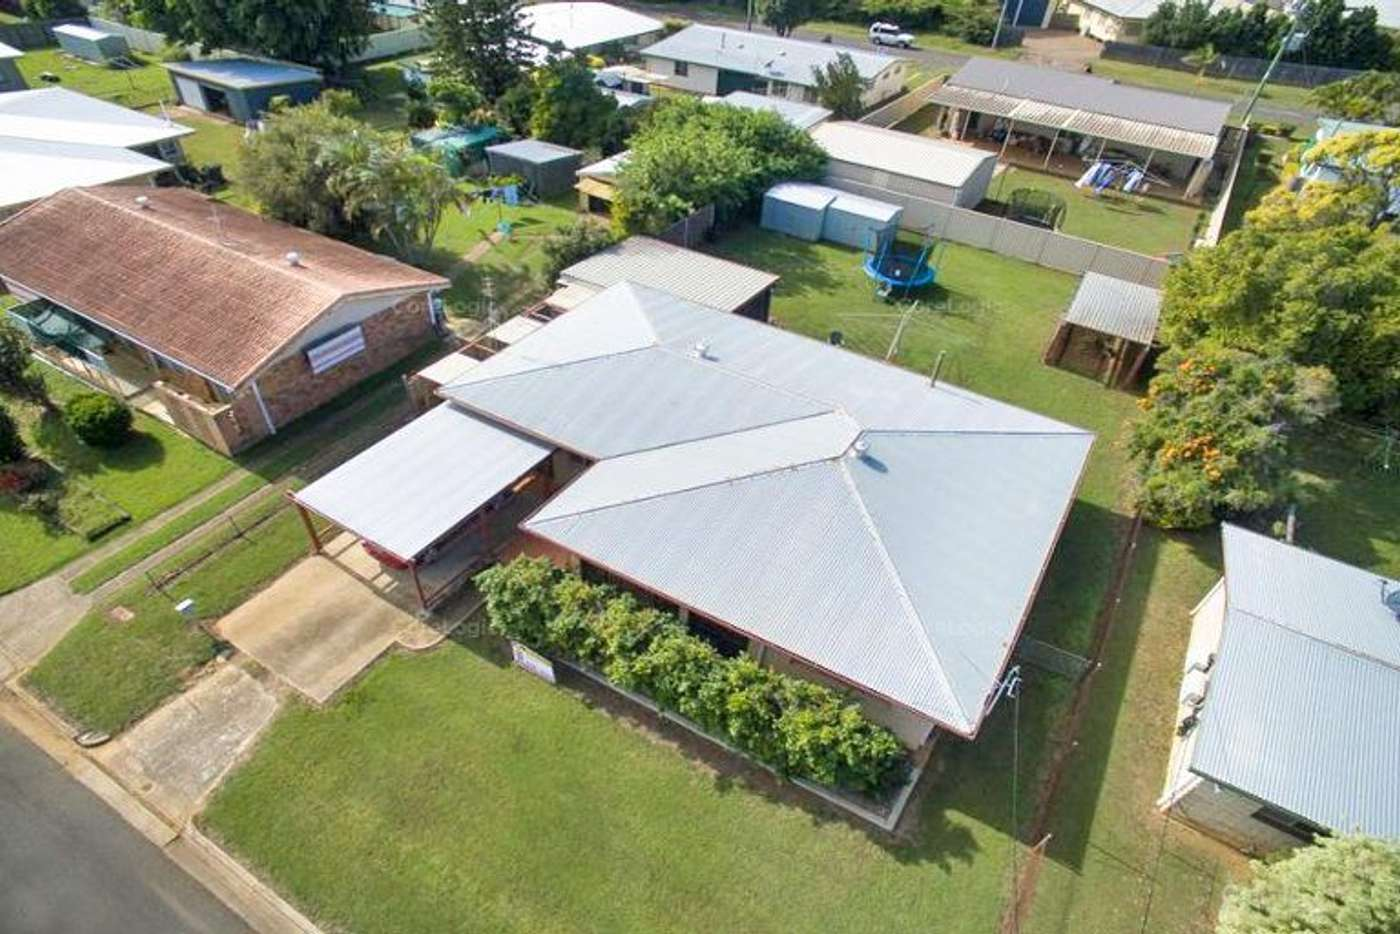 Main view of Homely house listing, 16 Kingsford Street, Kalkie QLD 4670